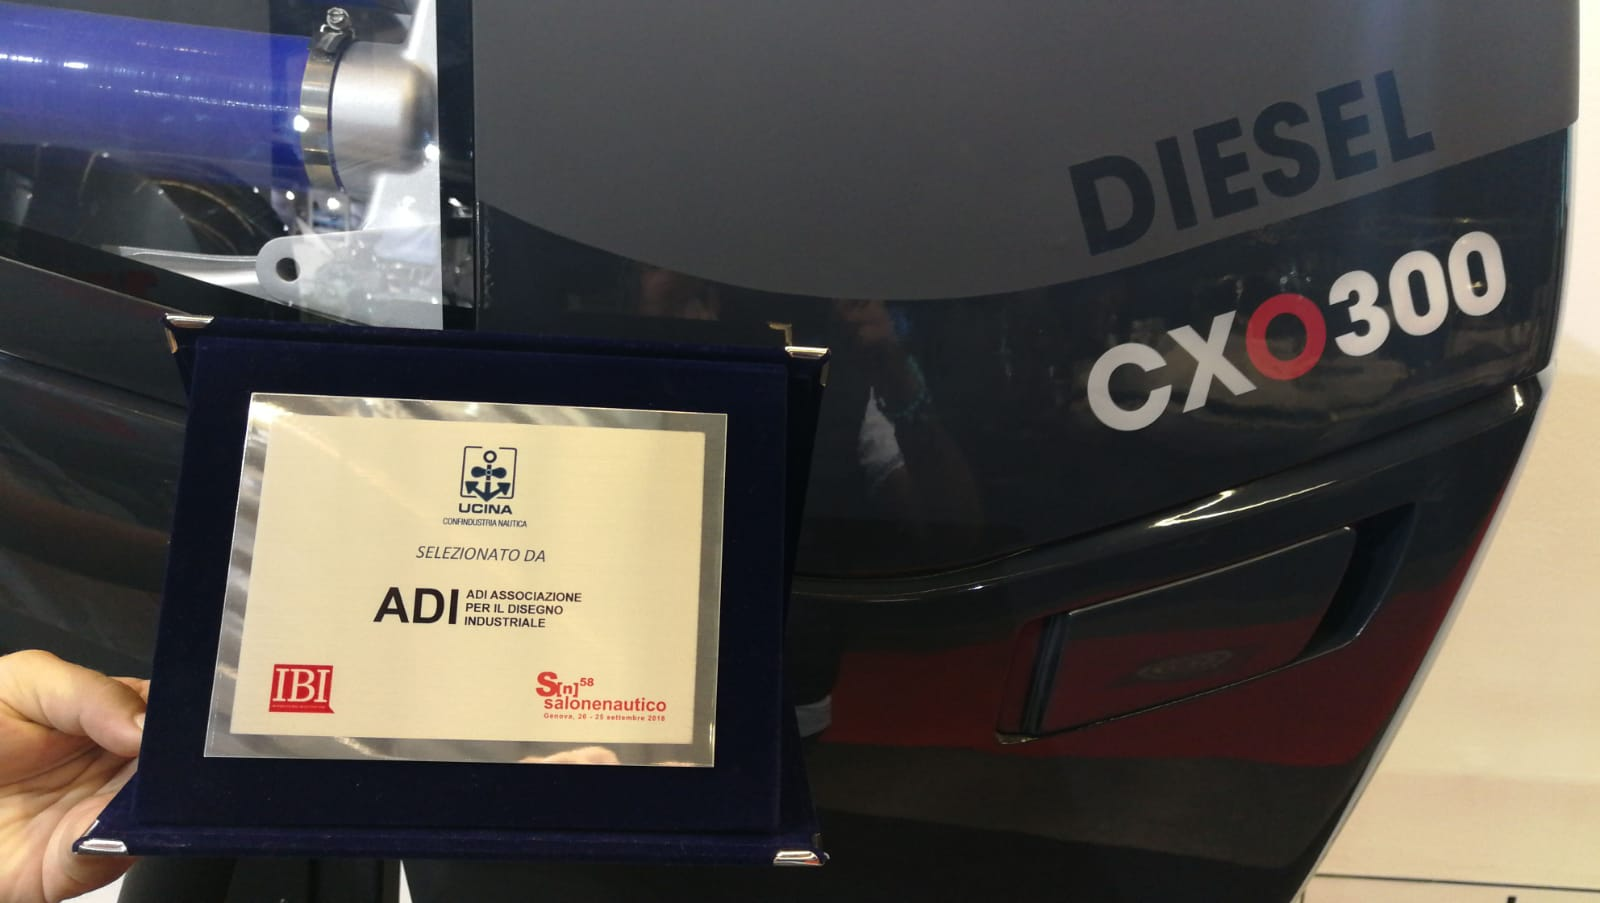 CXO300 wins ADI award for industrial design